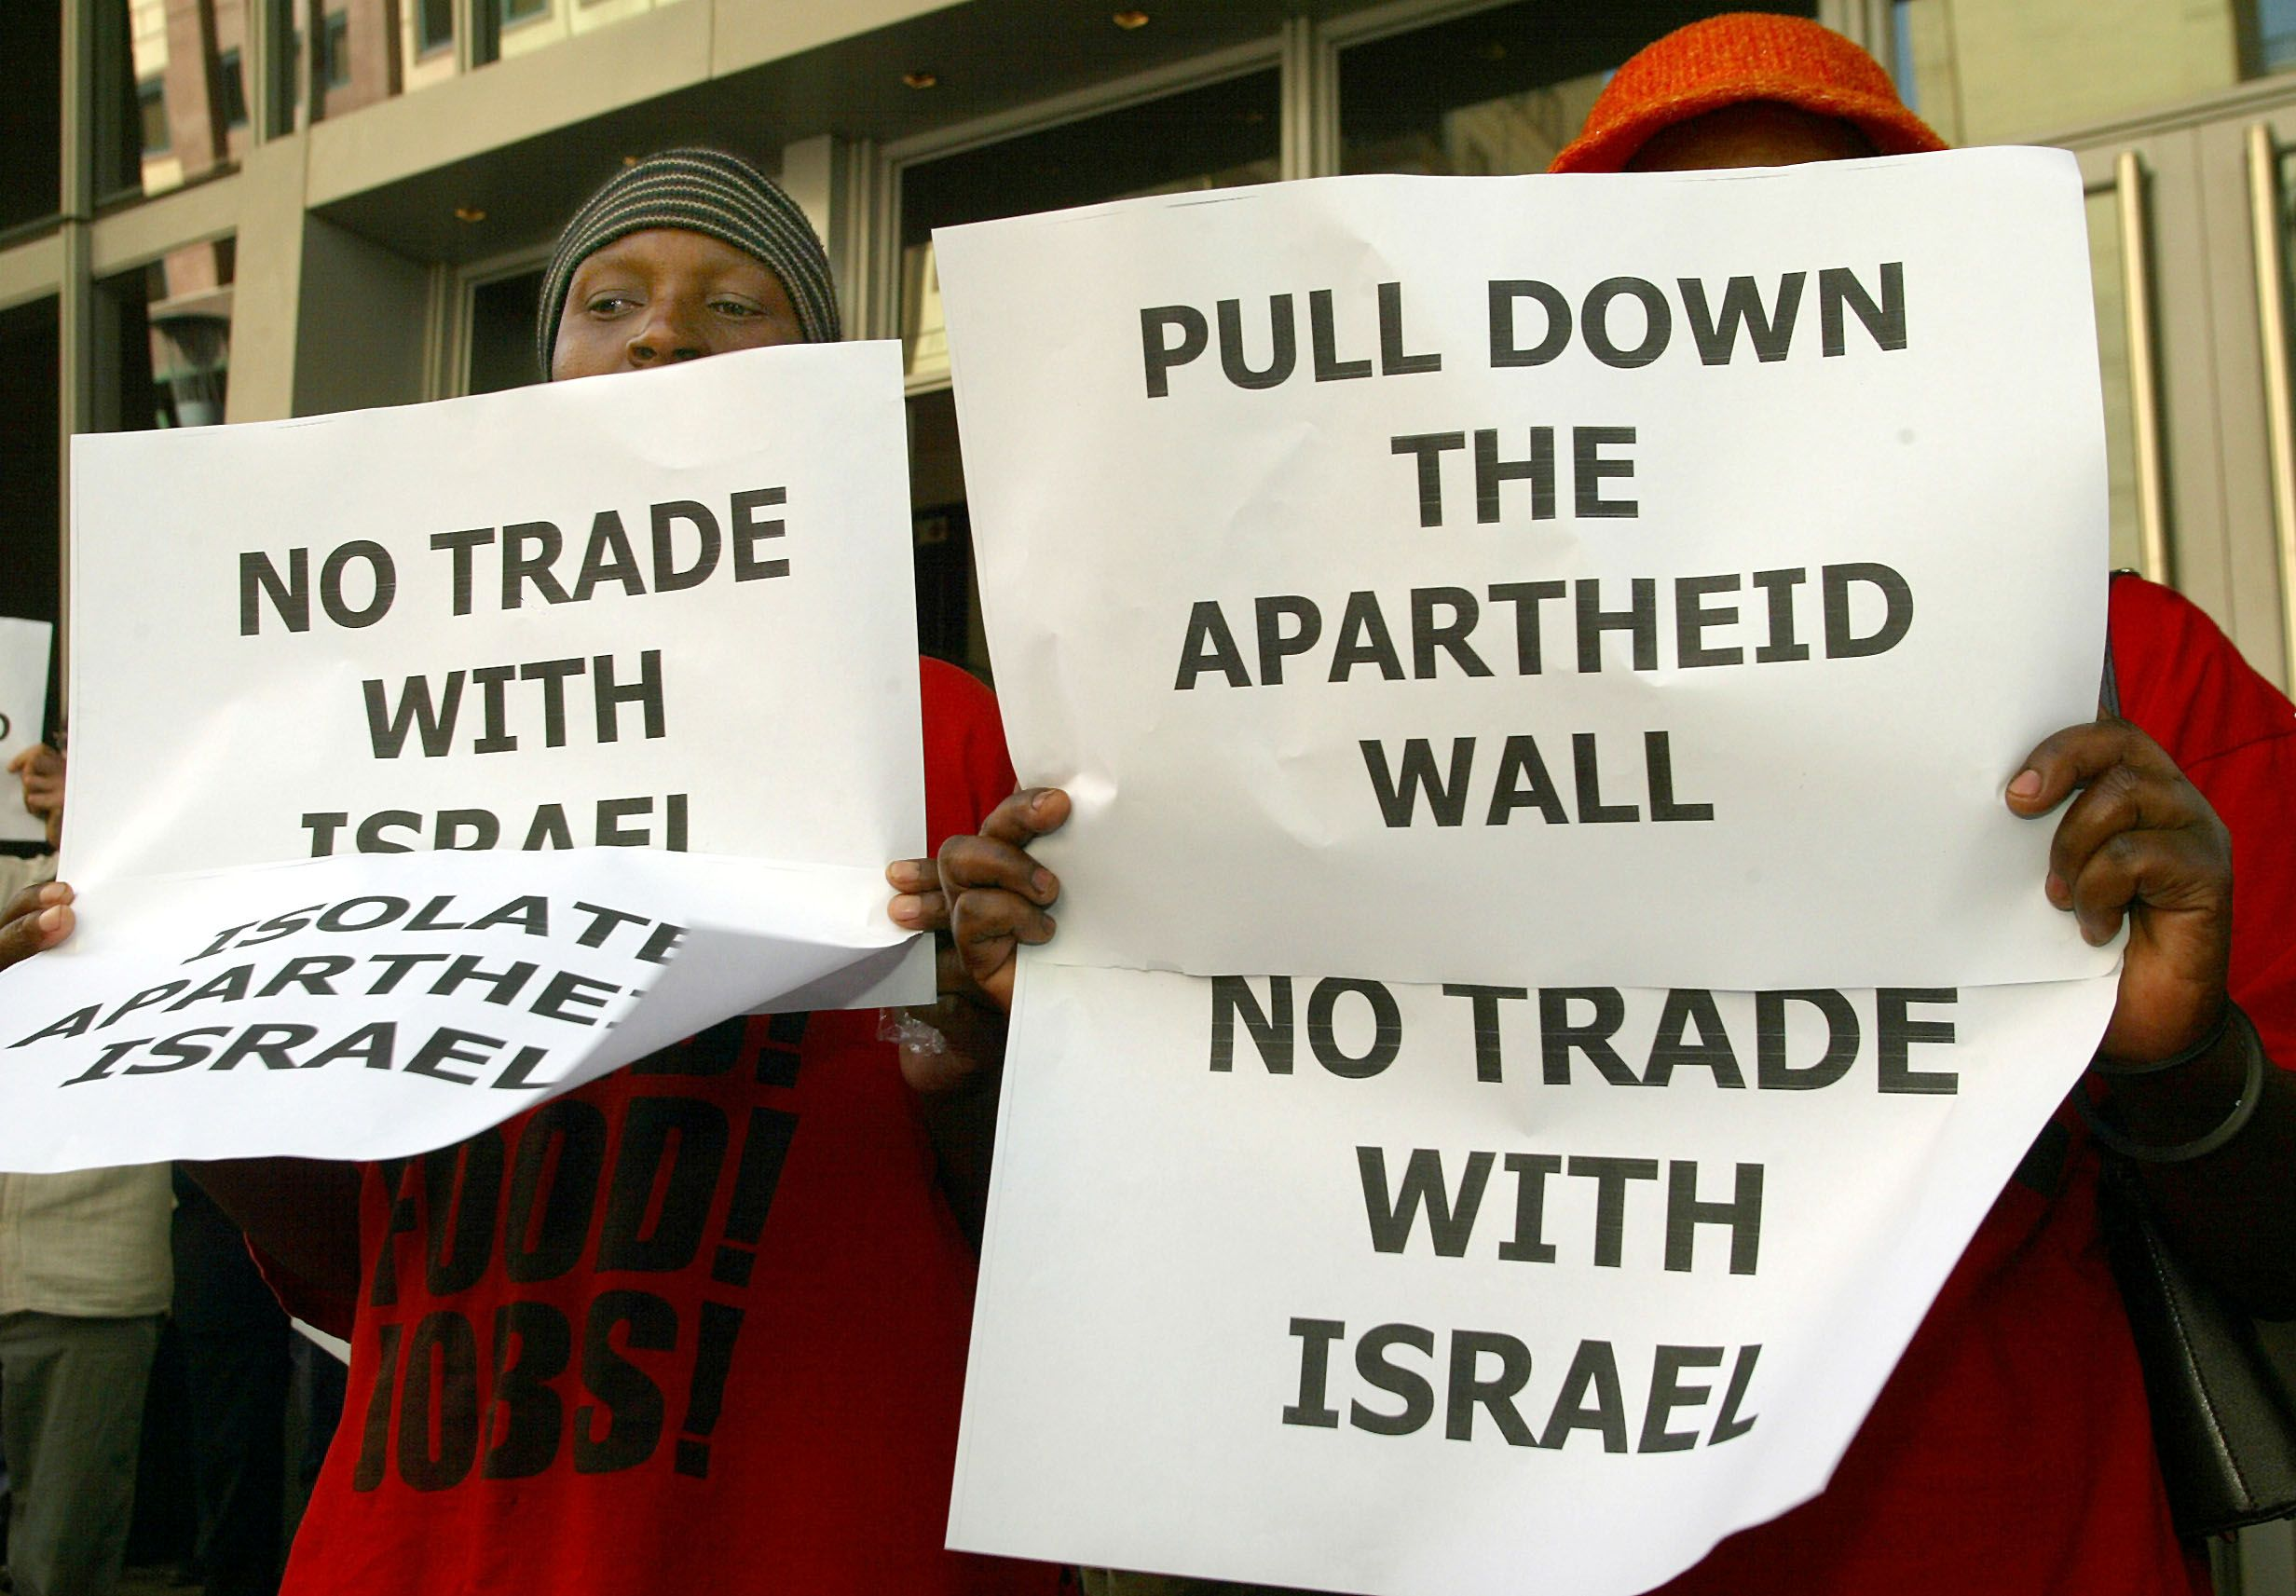 2-12-15 South Africa Israel